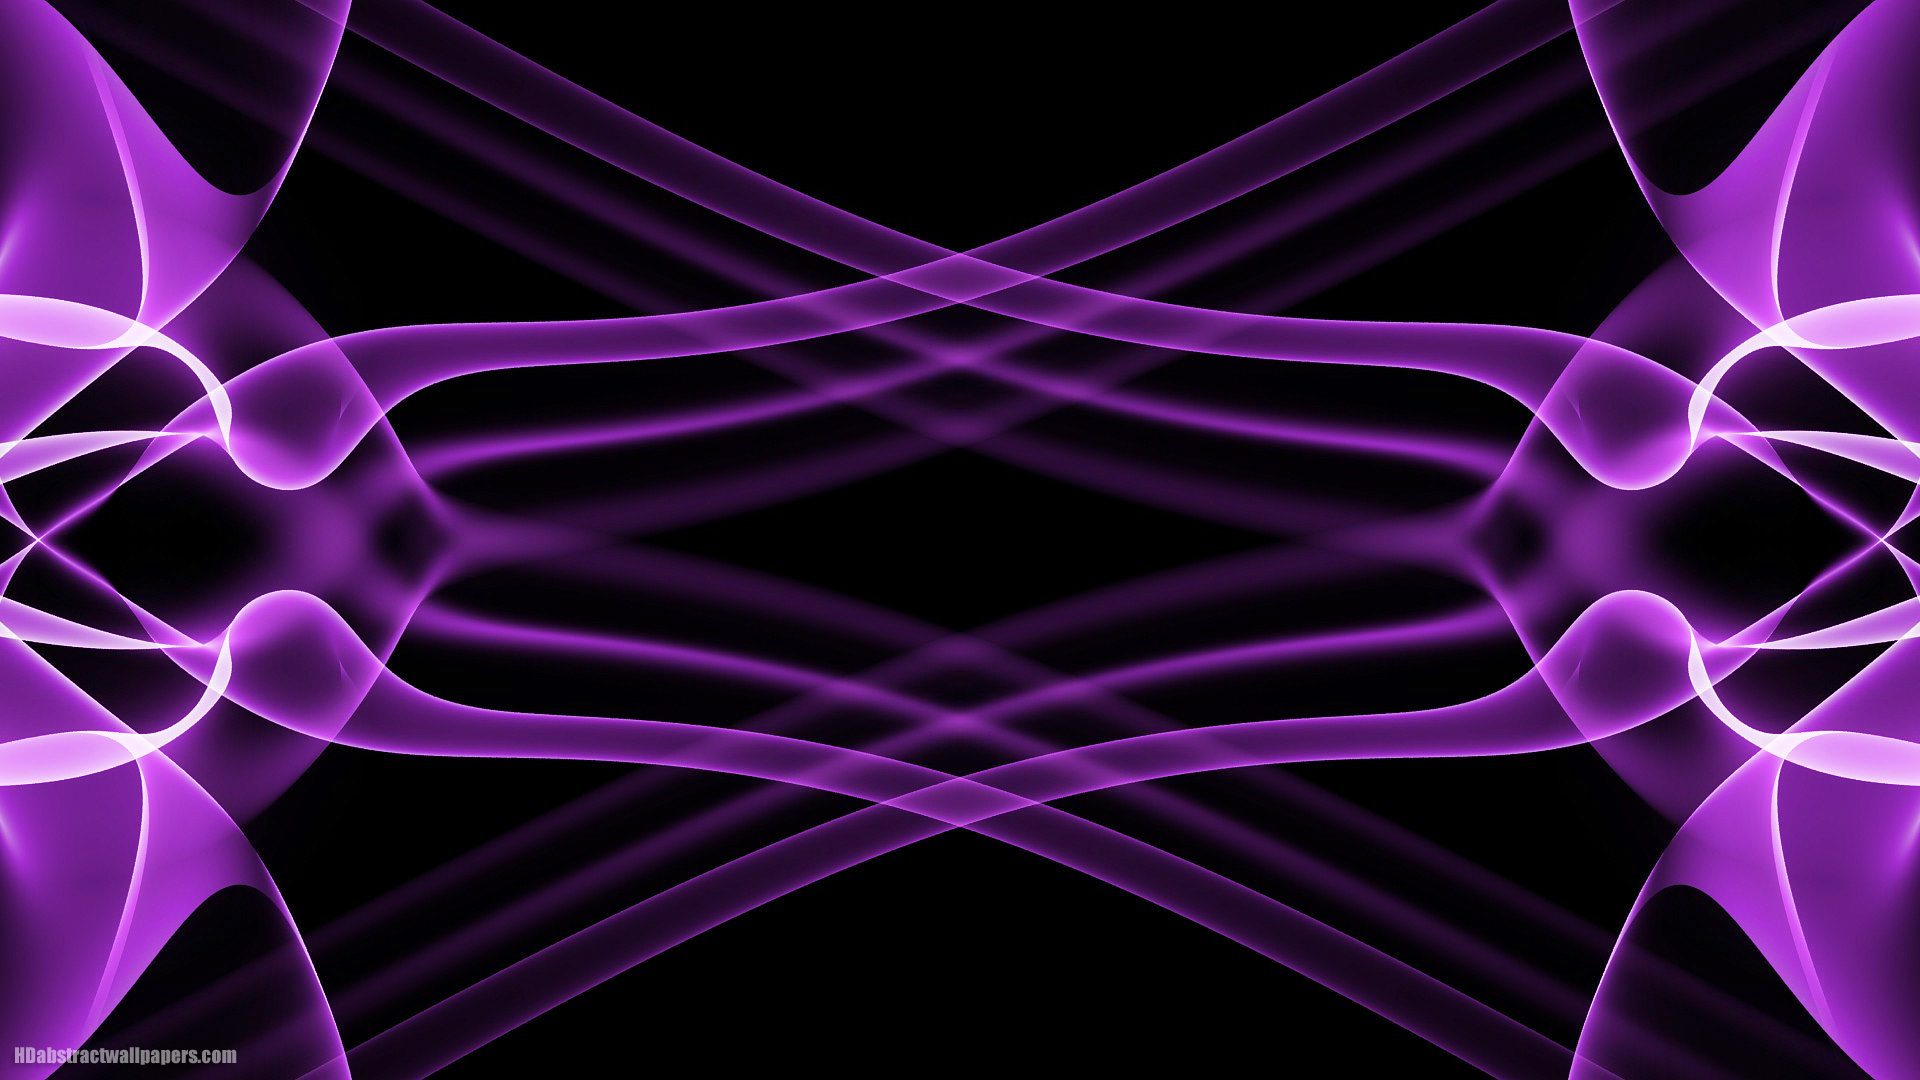 Abstract purple wallpaper with black background HD 1920x1080